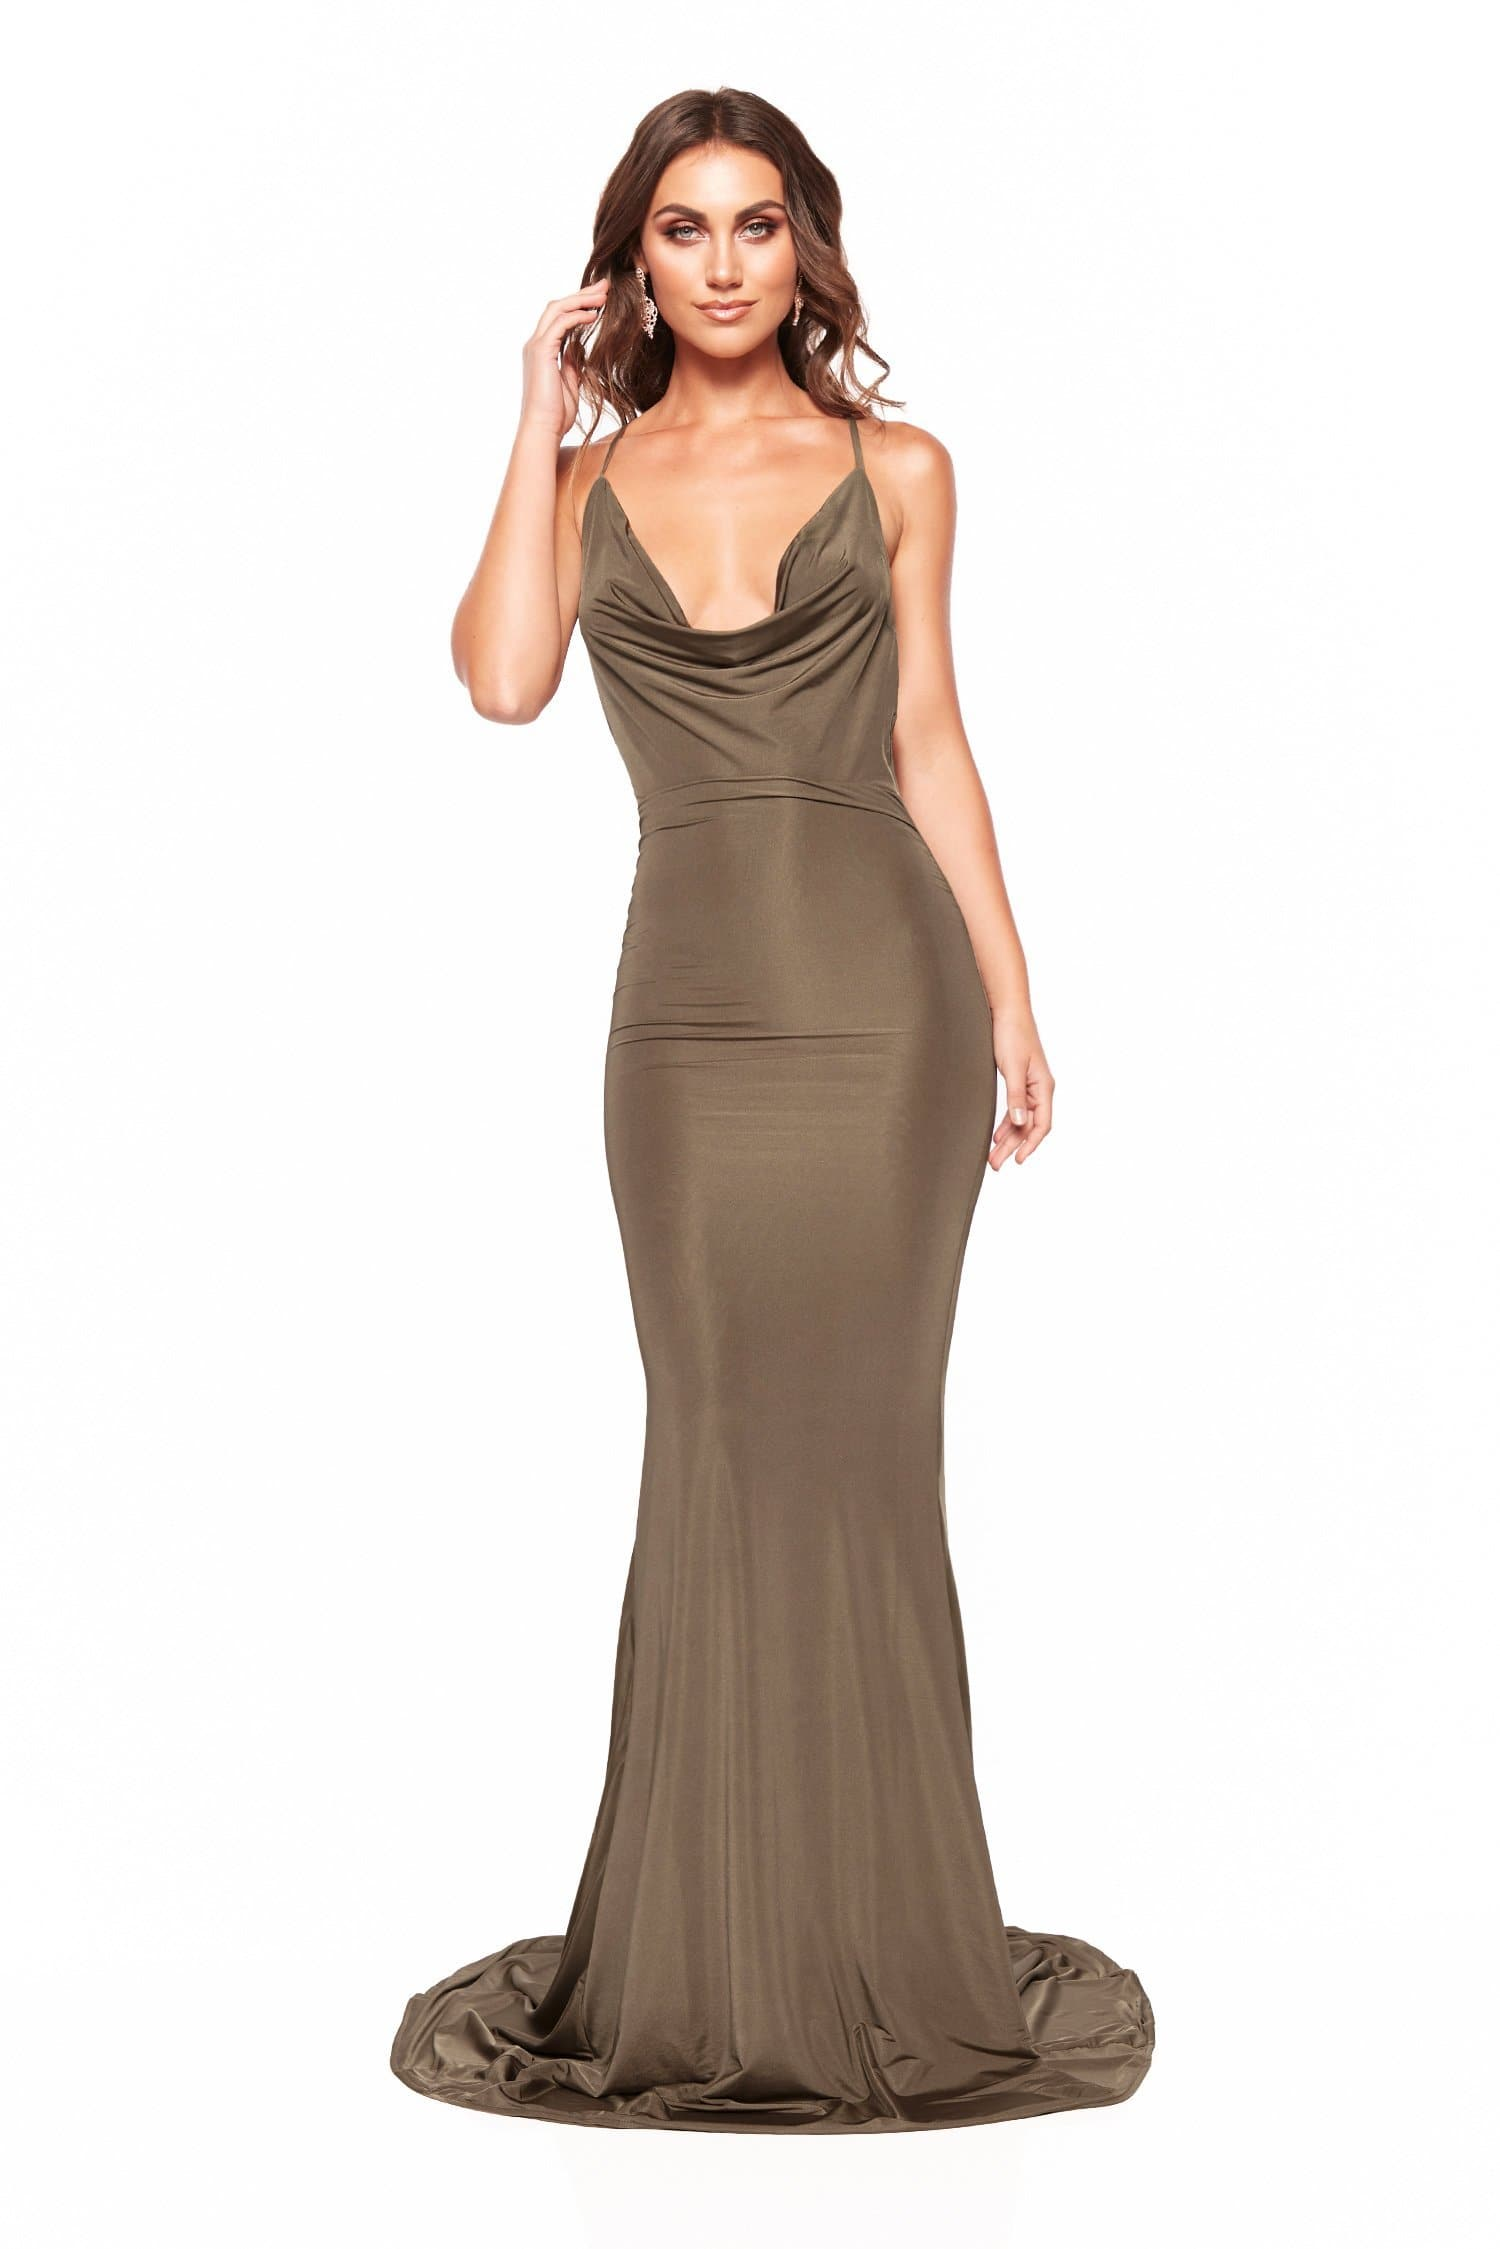 Antonia - Olive Jersey Gown with Cowl Neckline & Mermaid Train